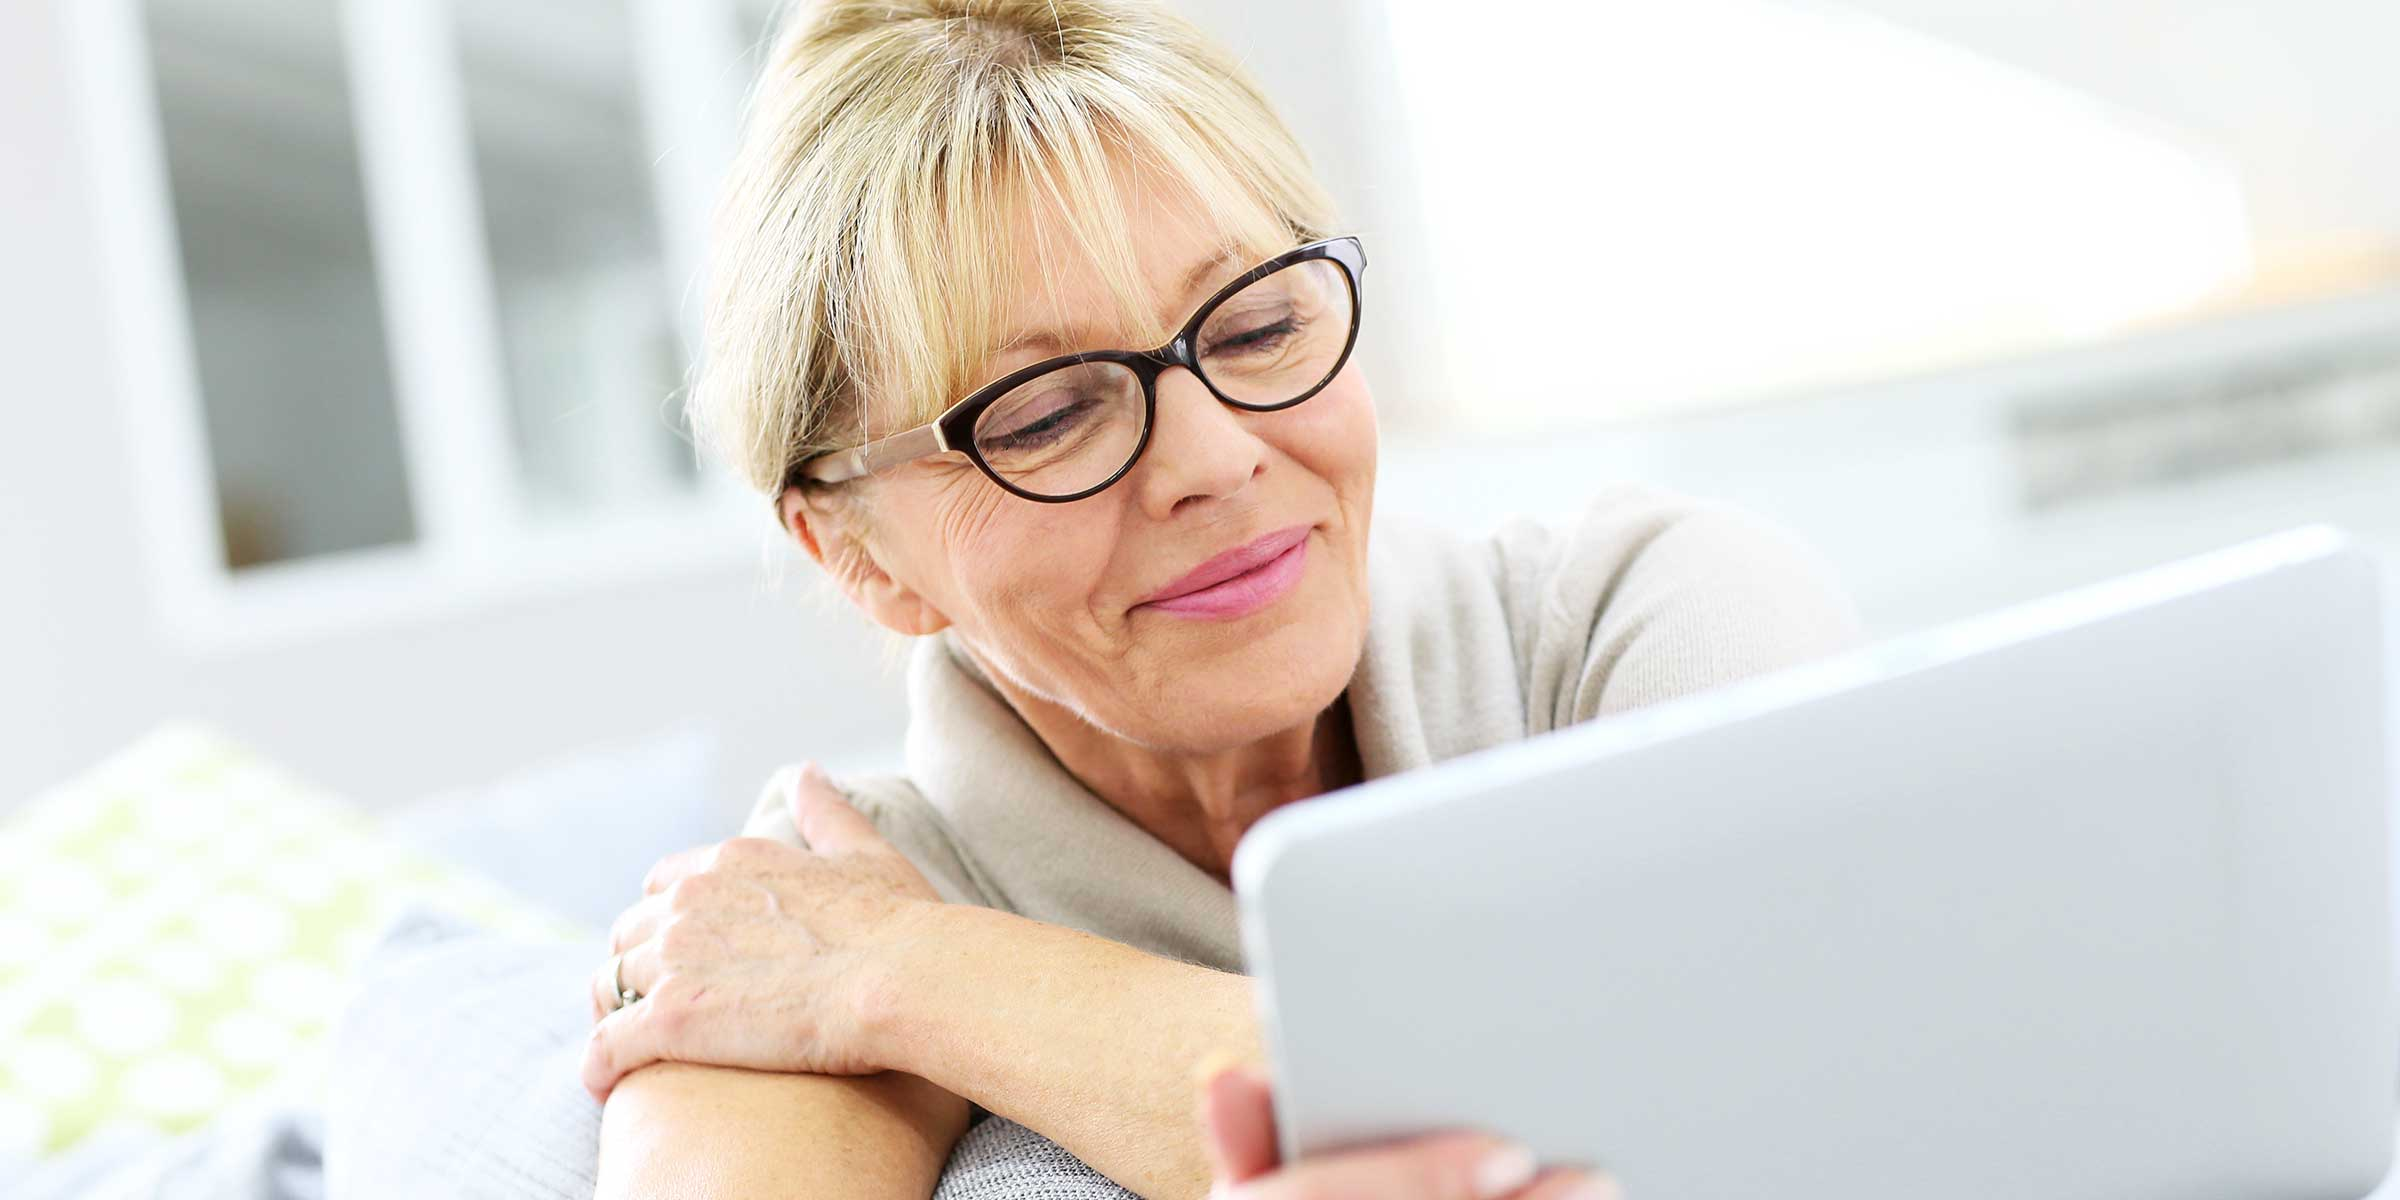 Older woman with glasses looking at a tablet